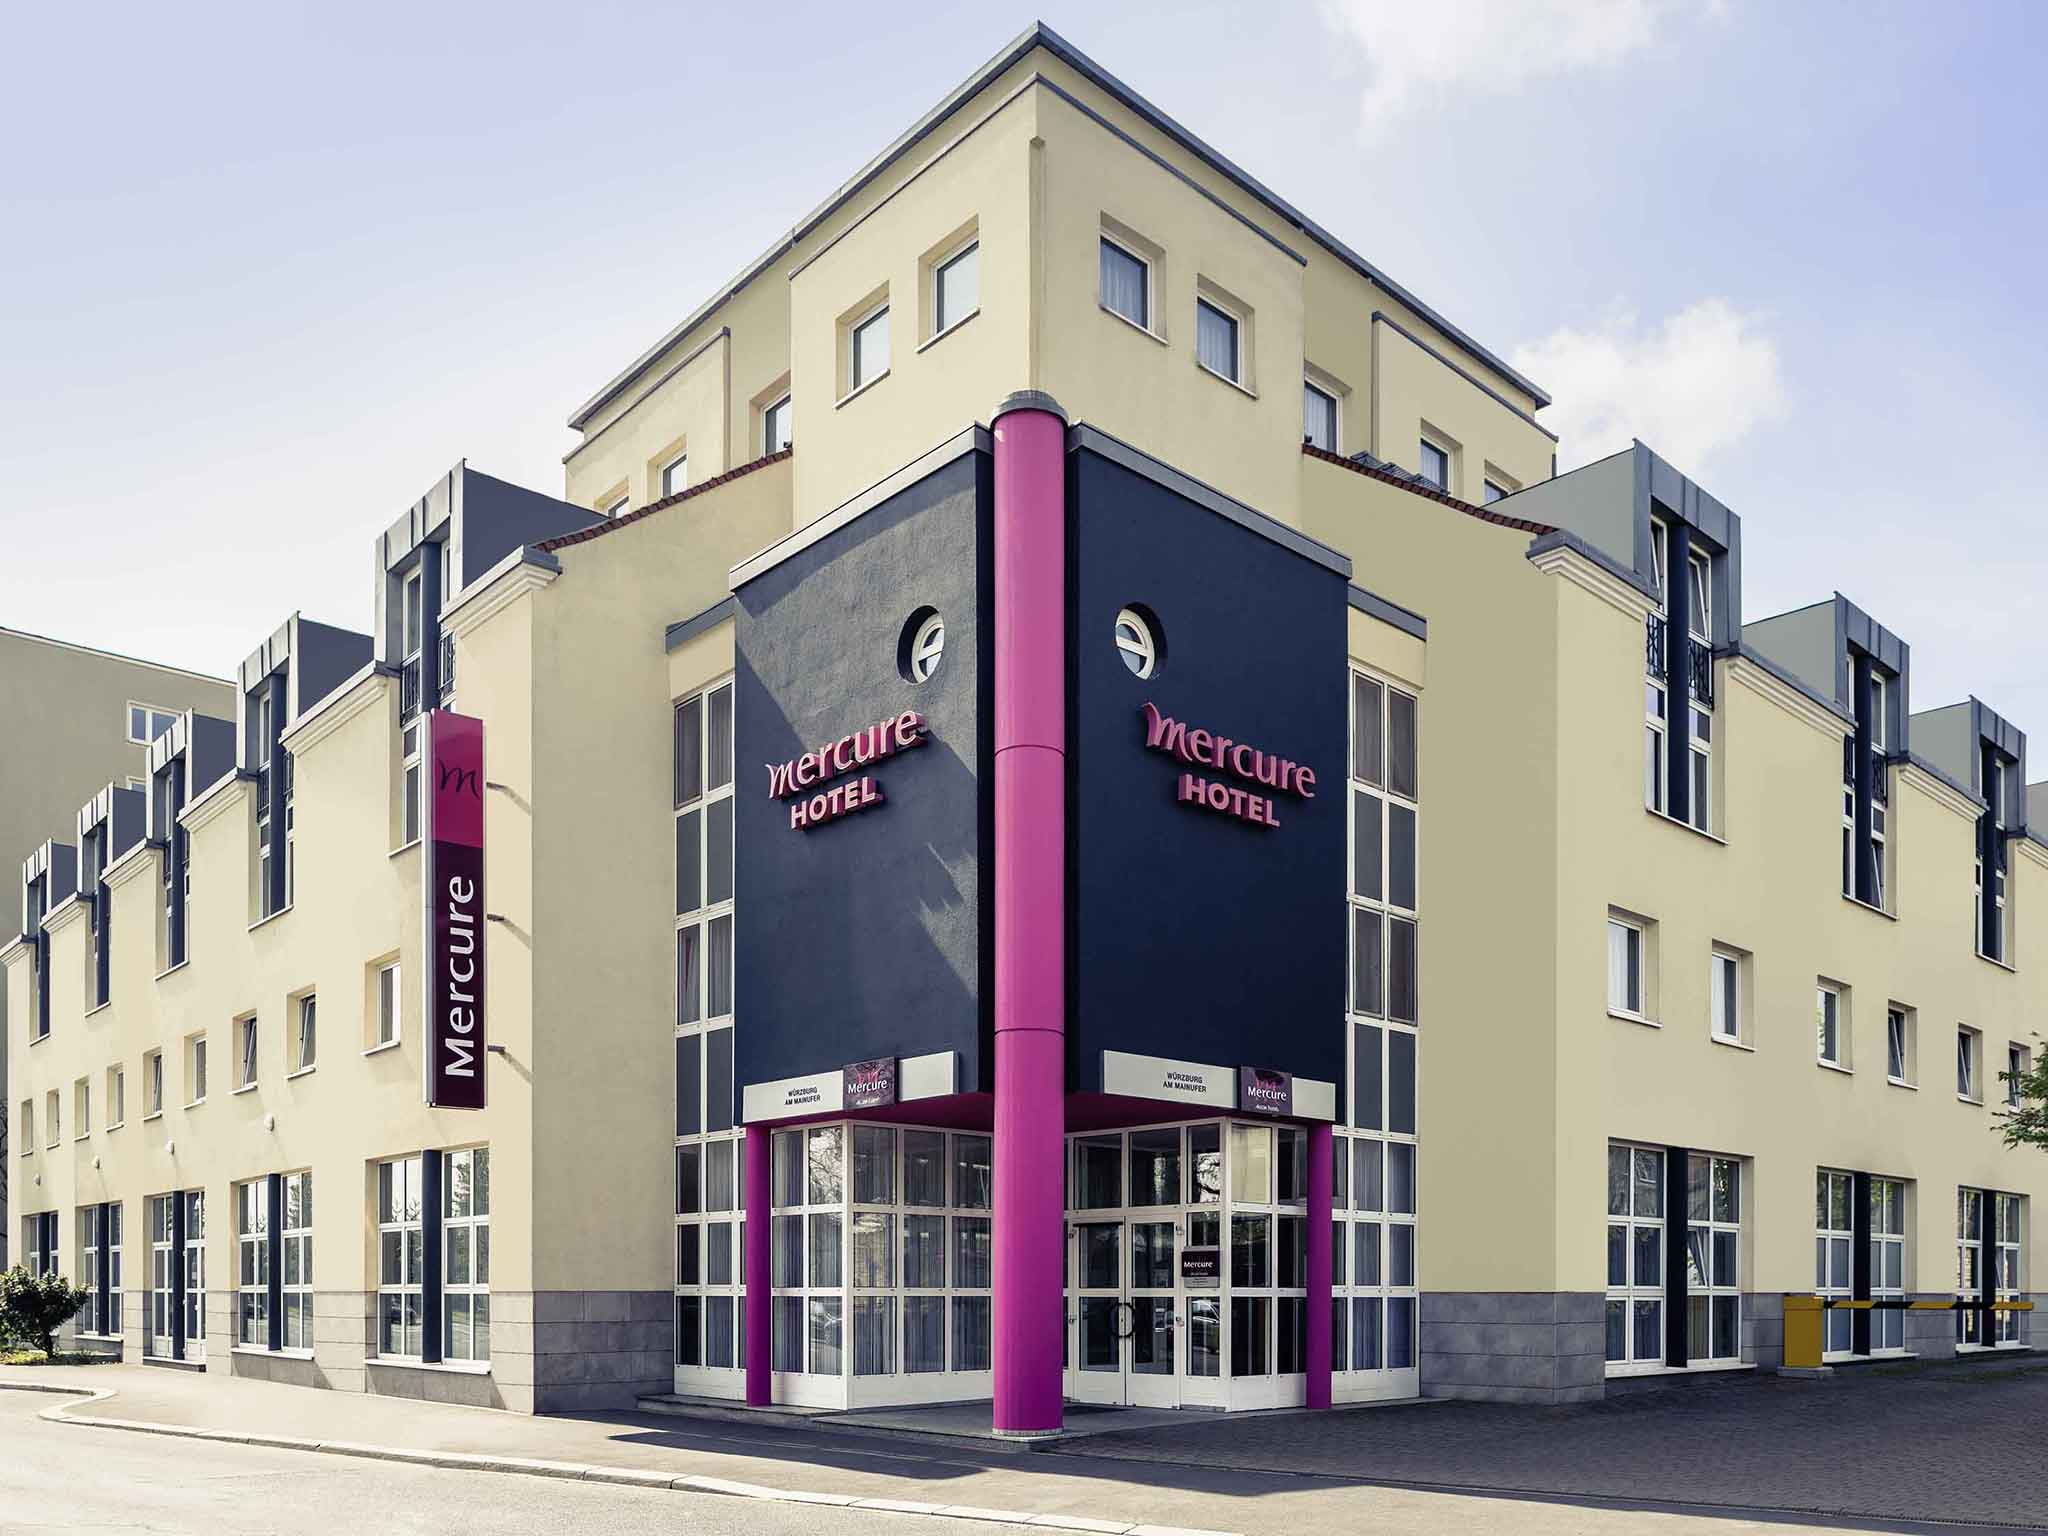 Hotel - Mercure Hotel Wuerzburg am Mainufer